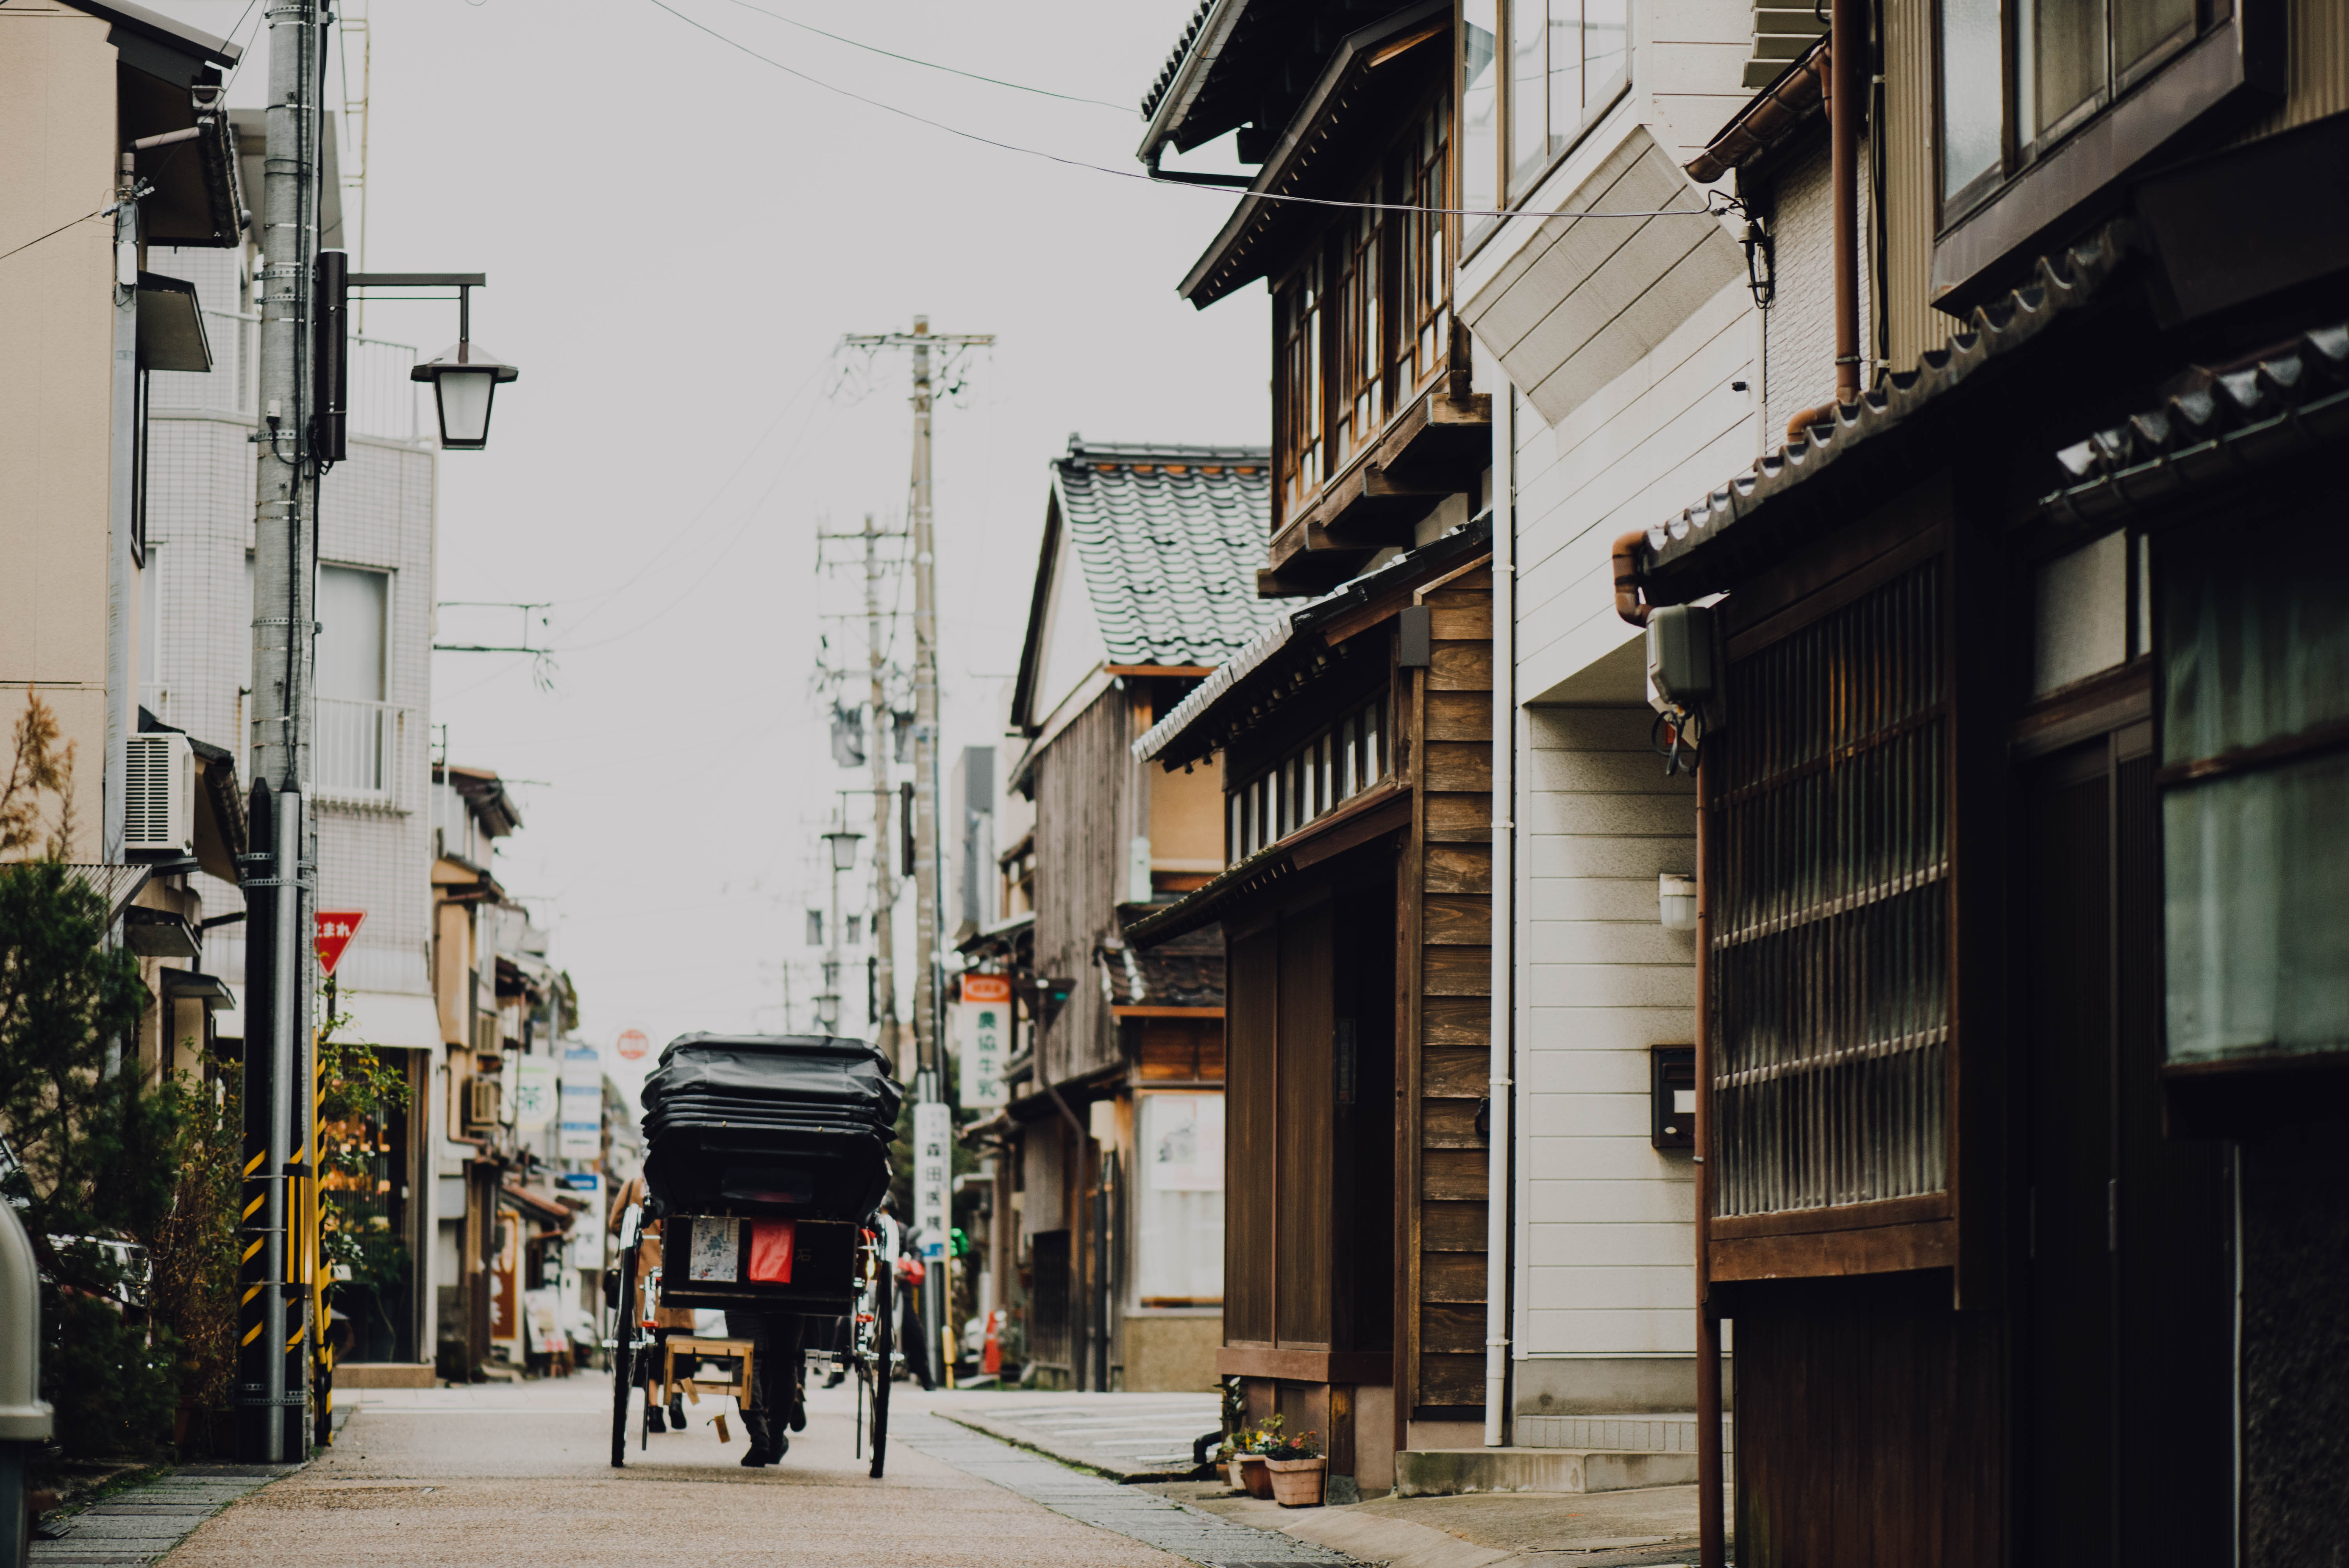 Asian street with a carriage going down the road lined with buildings and power lines